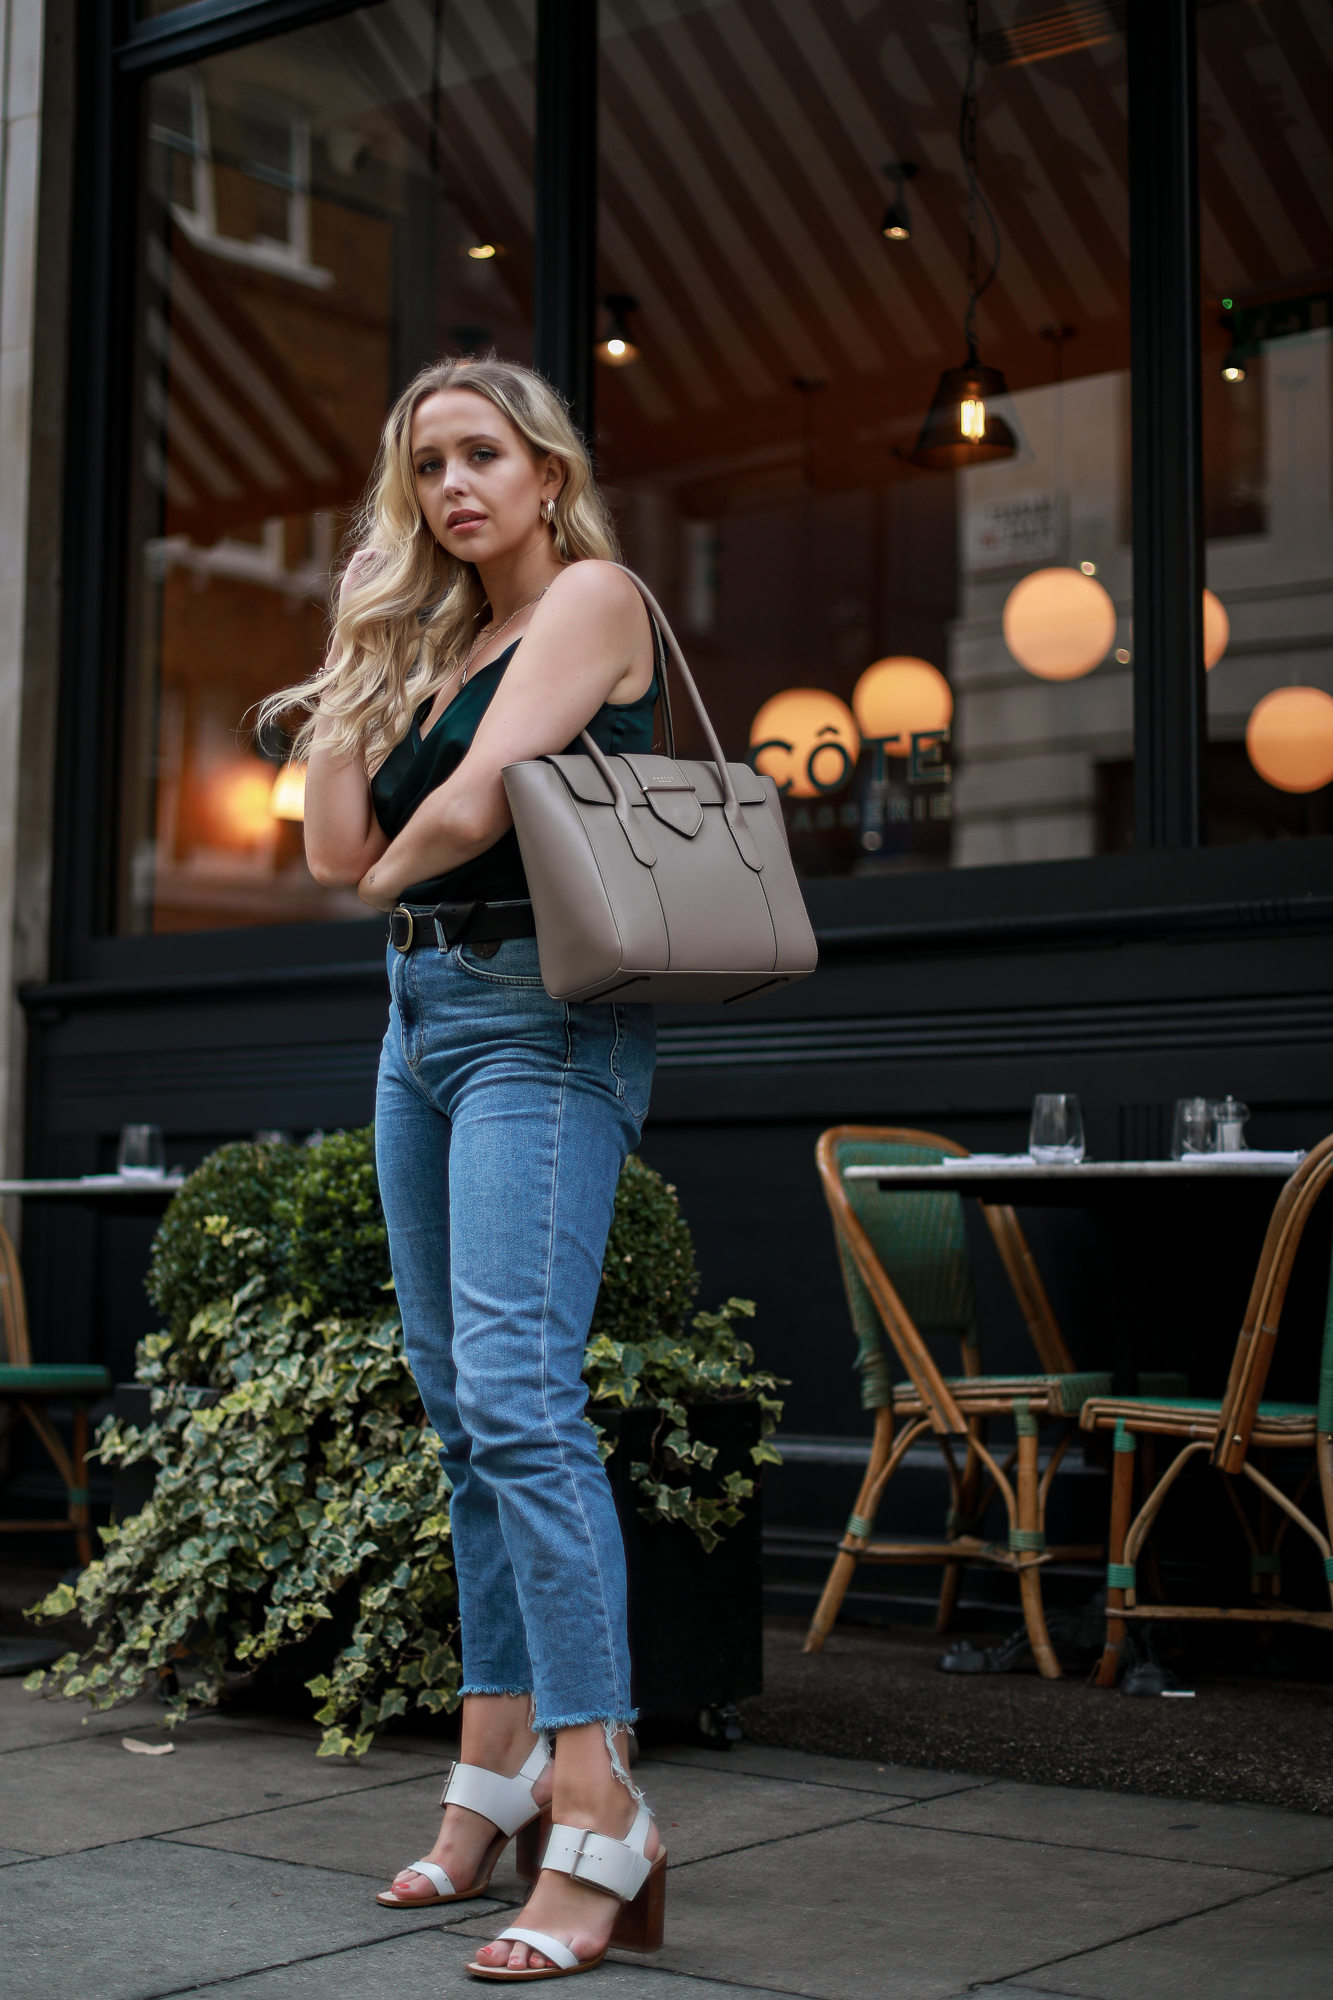 large-shoulder-bag-straight-leg-jeans-evening-top